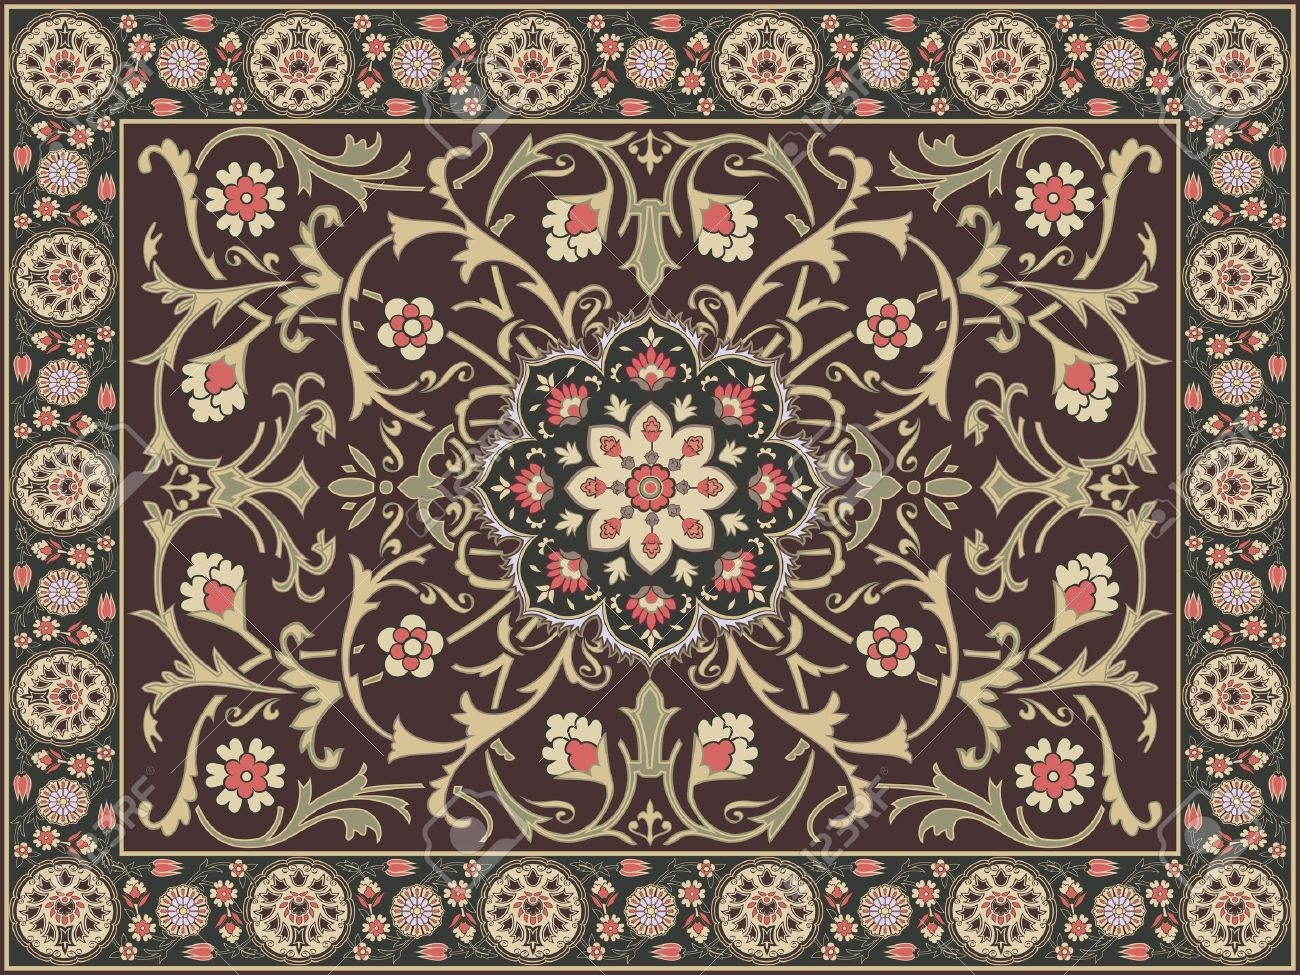 Arabic Style Carpet Design Royalty Free Cliparts Vectors And Regarding Arabic Carpets (Image 8 of 15)